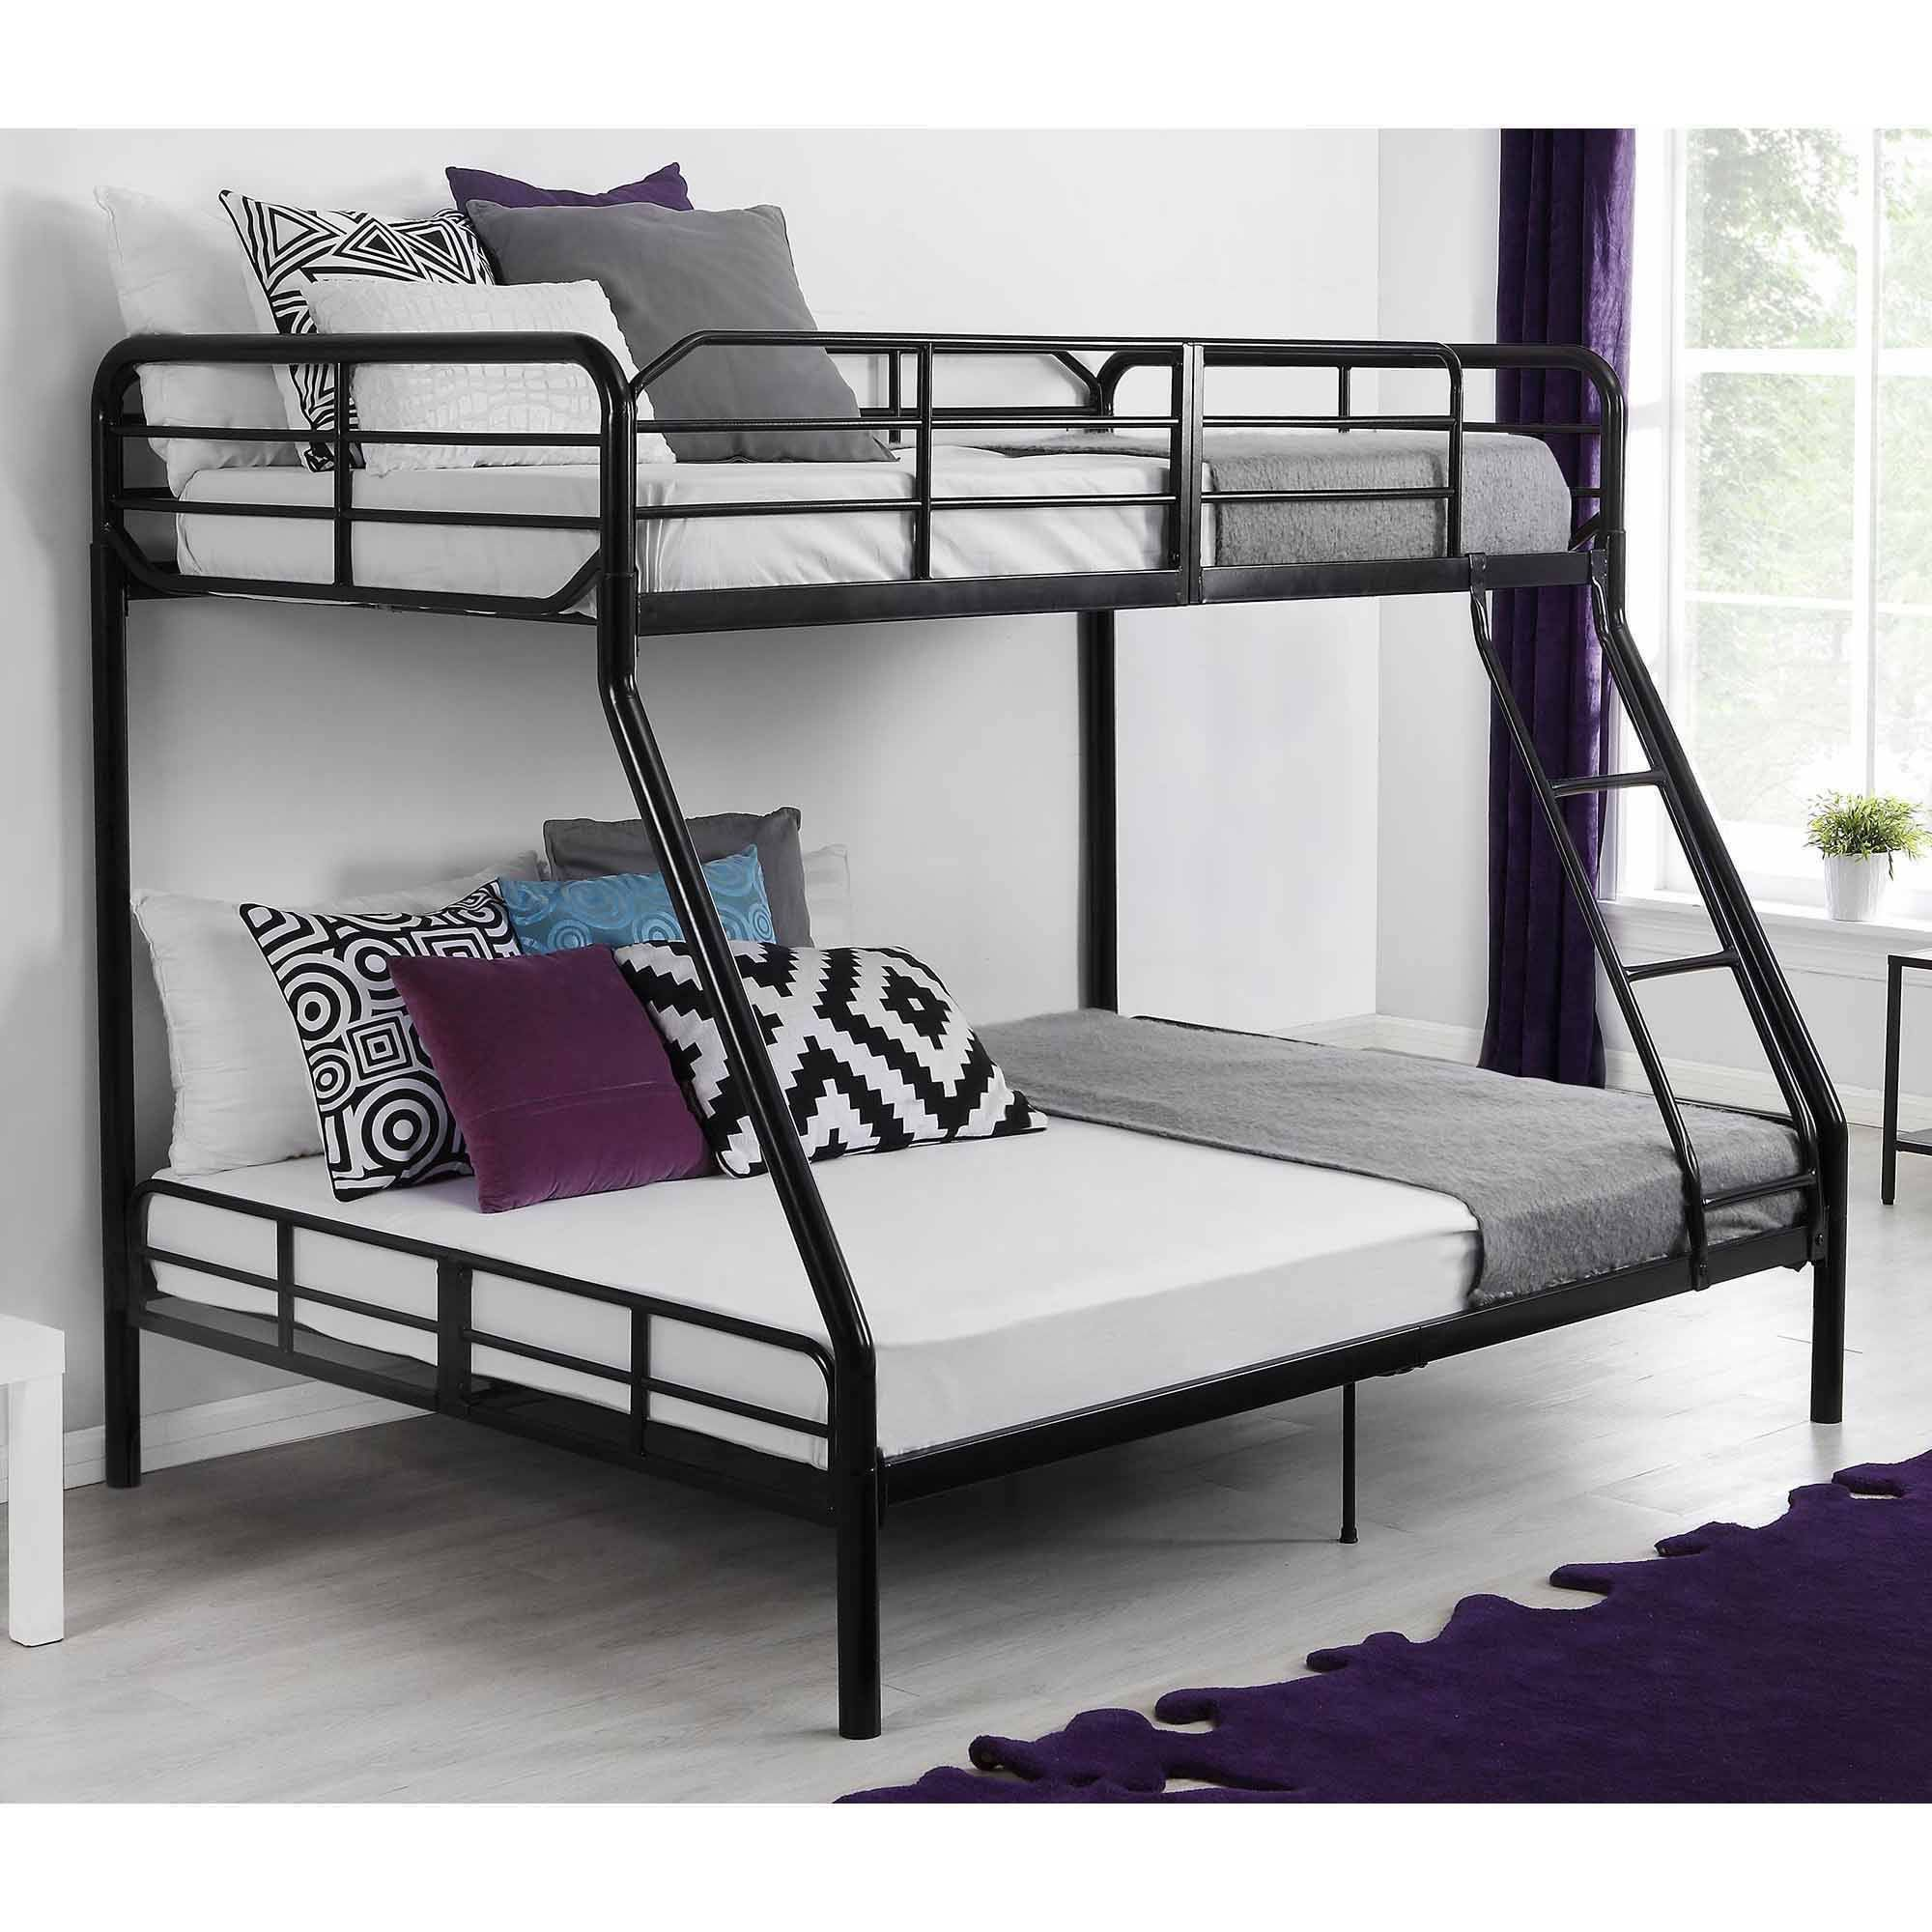 Dhp Twin Over Full Metal Bunk Bed Frame Multiple Colors Walmart Com In 2021 Bunk Beds Full Bunk Beds Twin Bunk Beds Metal frame bunk beds twin over full